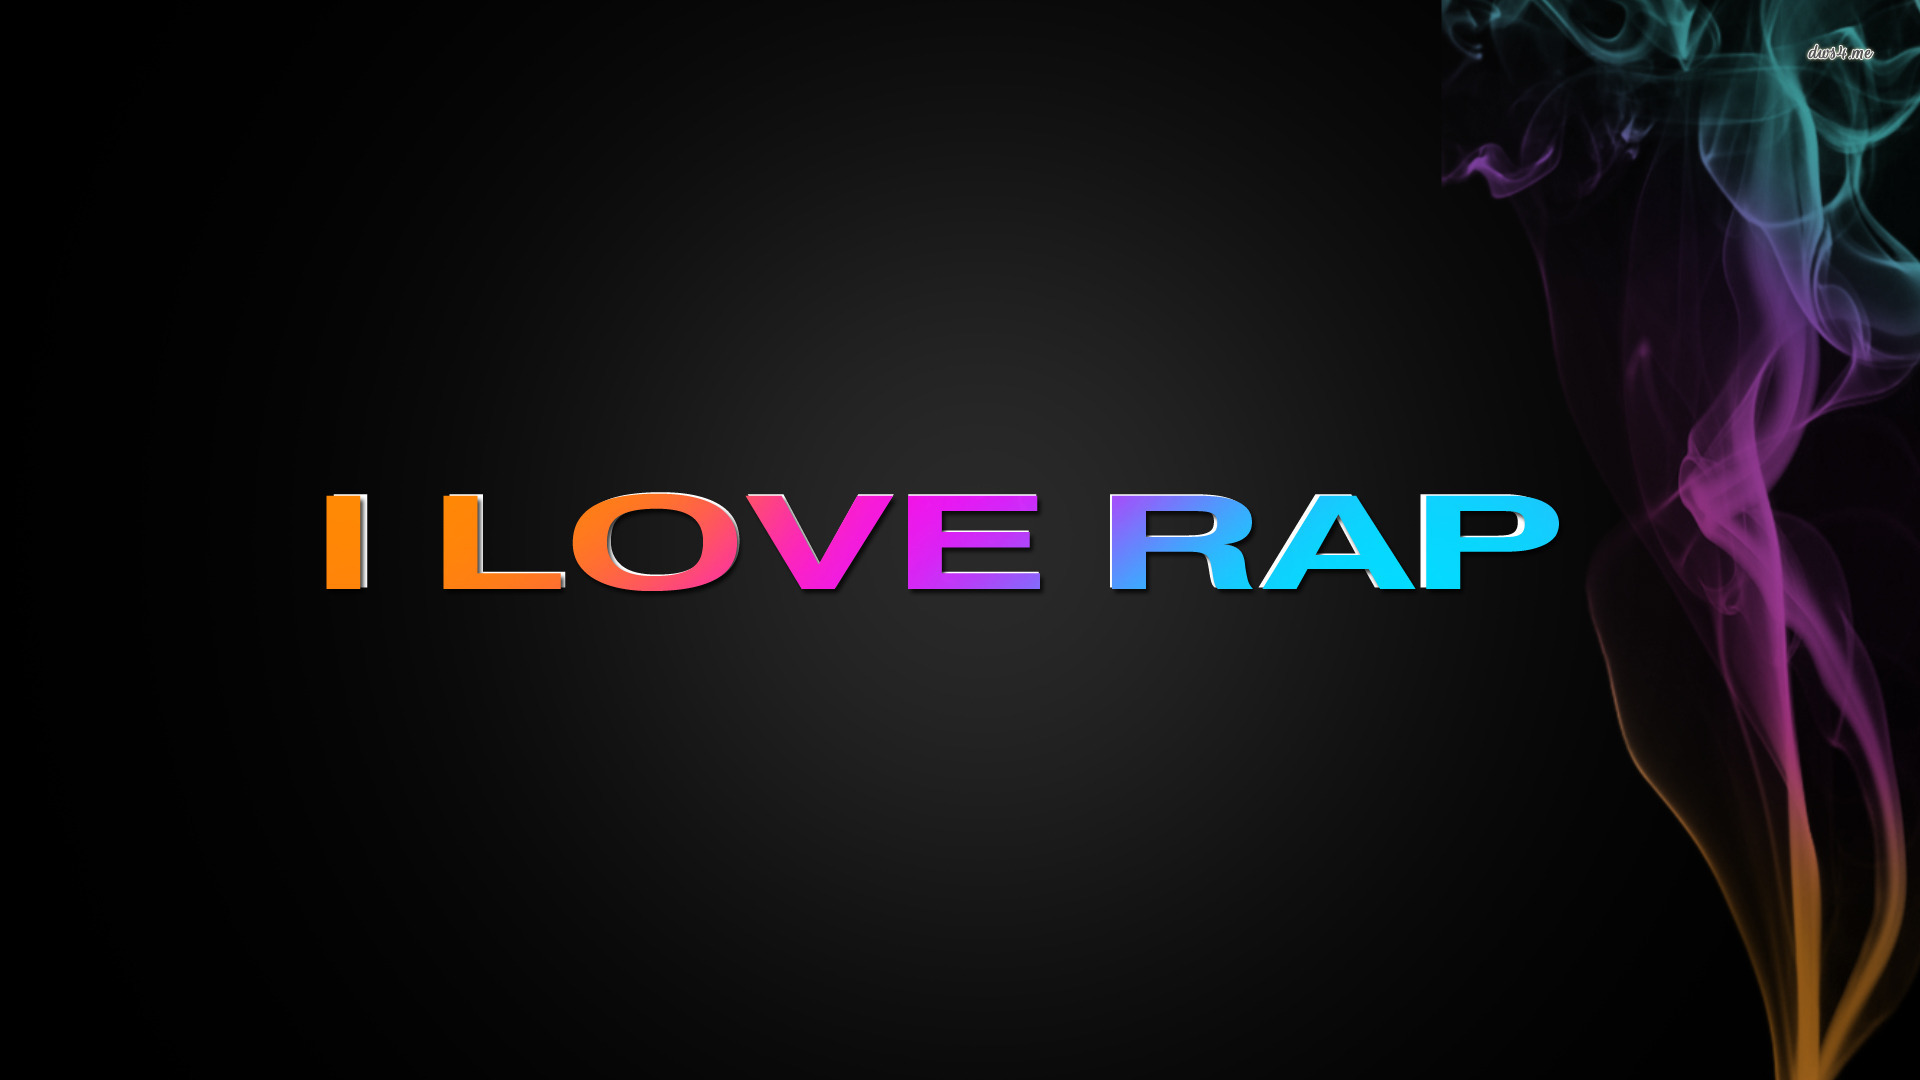 Rap Music Wallpaper Download HD Wallpapers 1920x1080